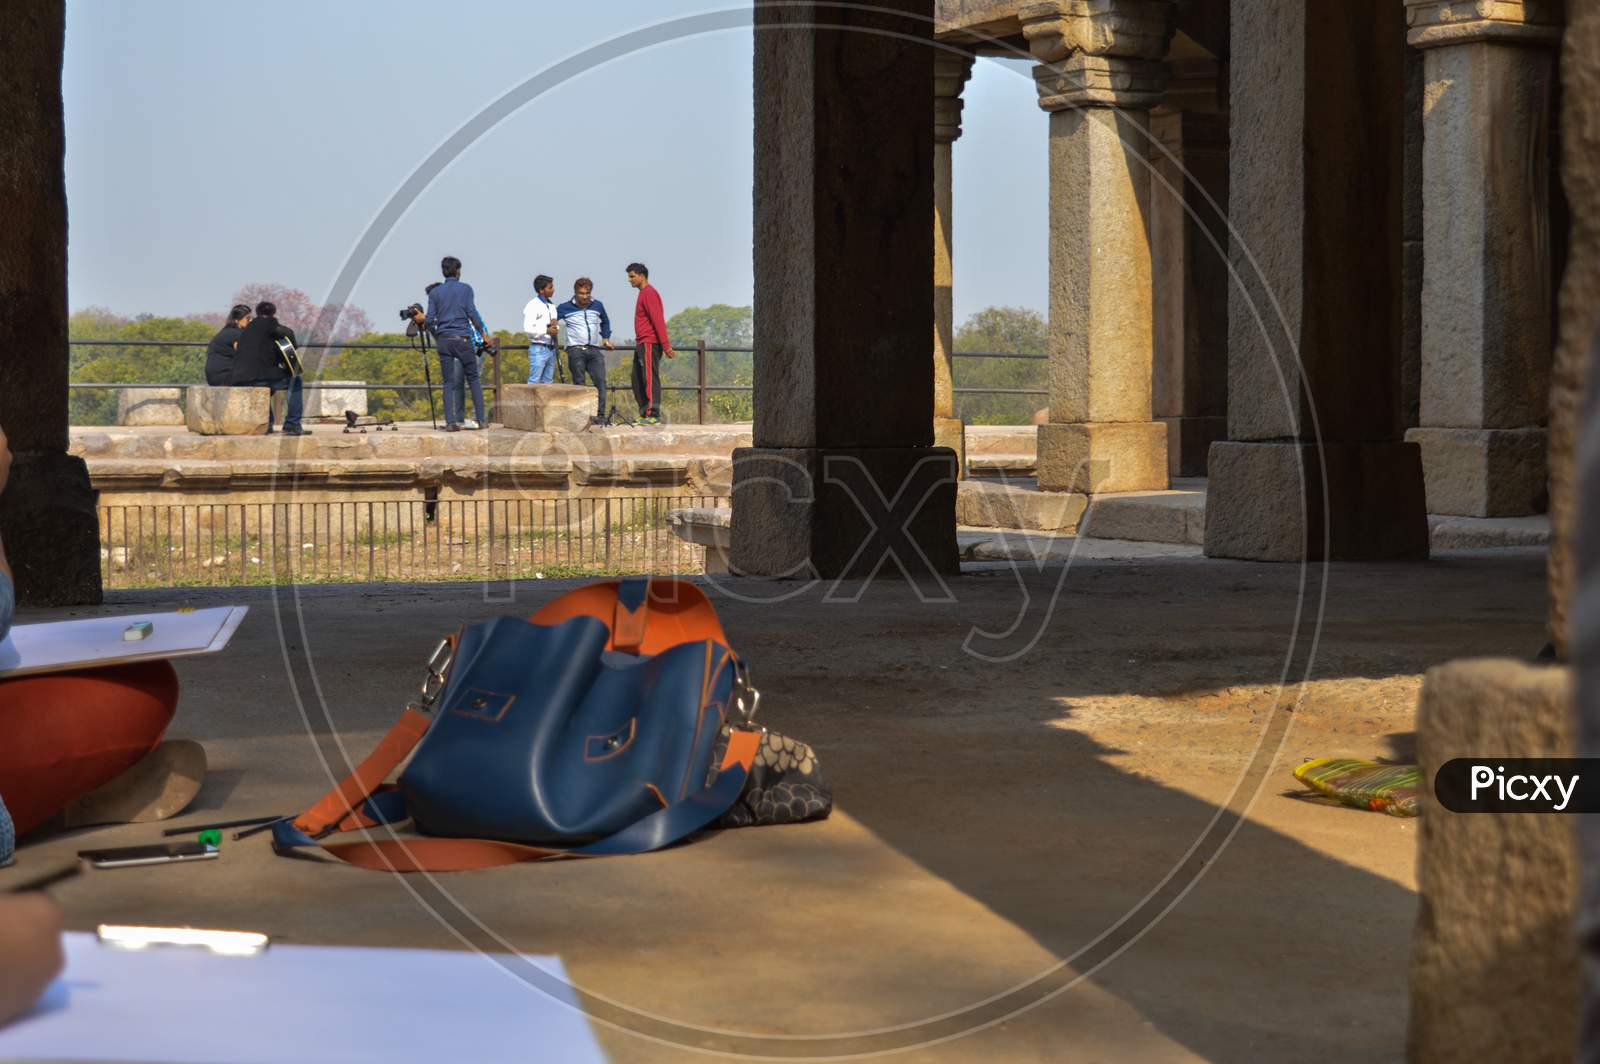 A Bunch Of Girls Is Drawing The Hauz Khas Monument And Garden From The Hauz Khas Fort At Hauz Khas Village At Winter Foggy Morning.